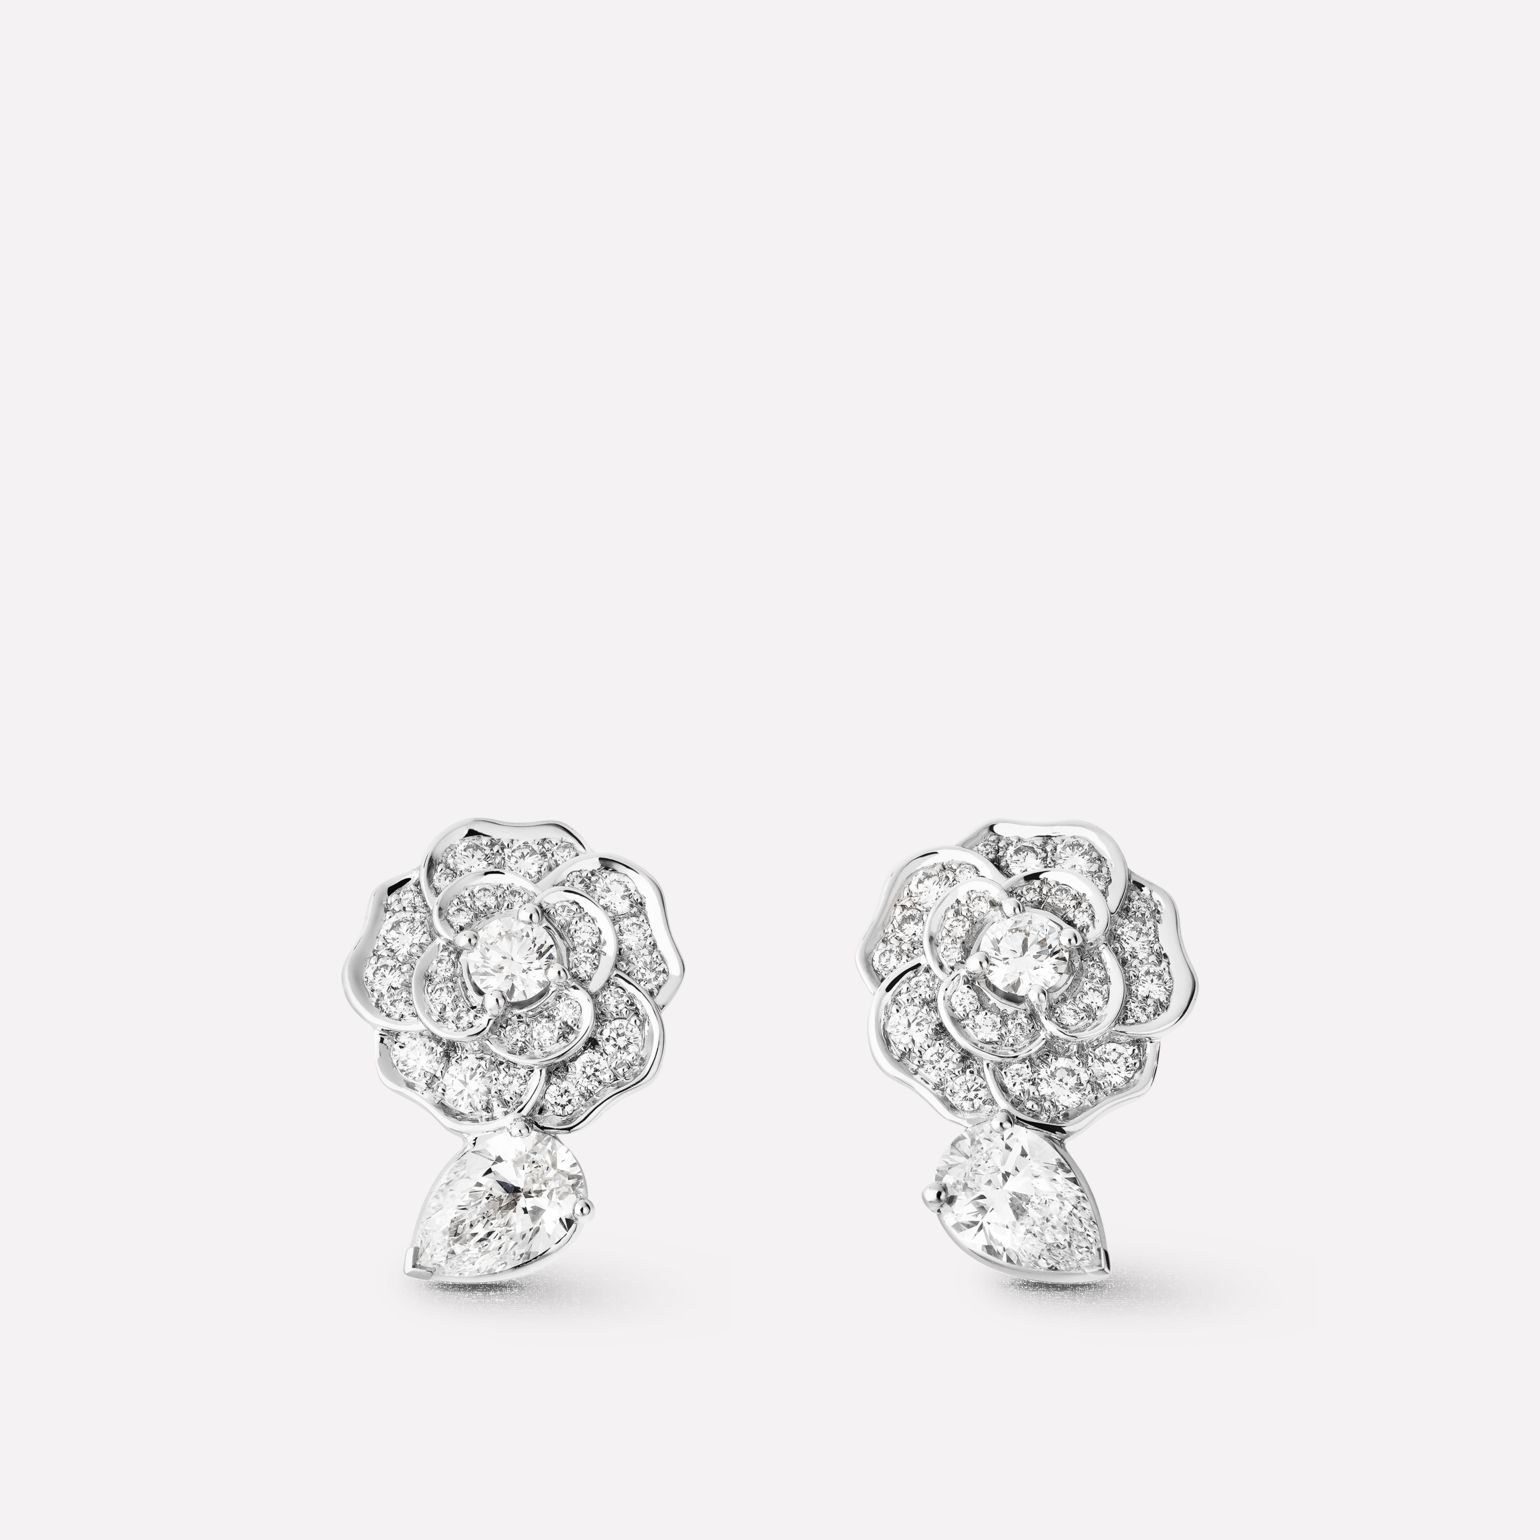 Camélia earrings Camélia Précieux earrings in 18K white gold and diamonds with centre diamonds